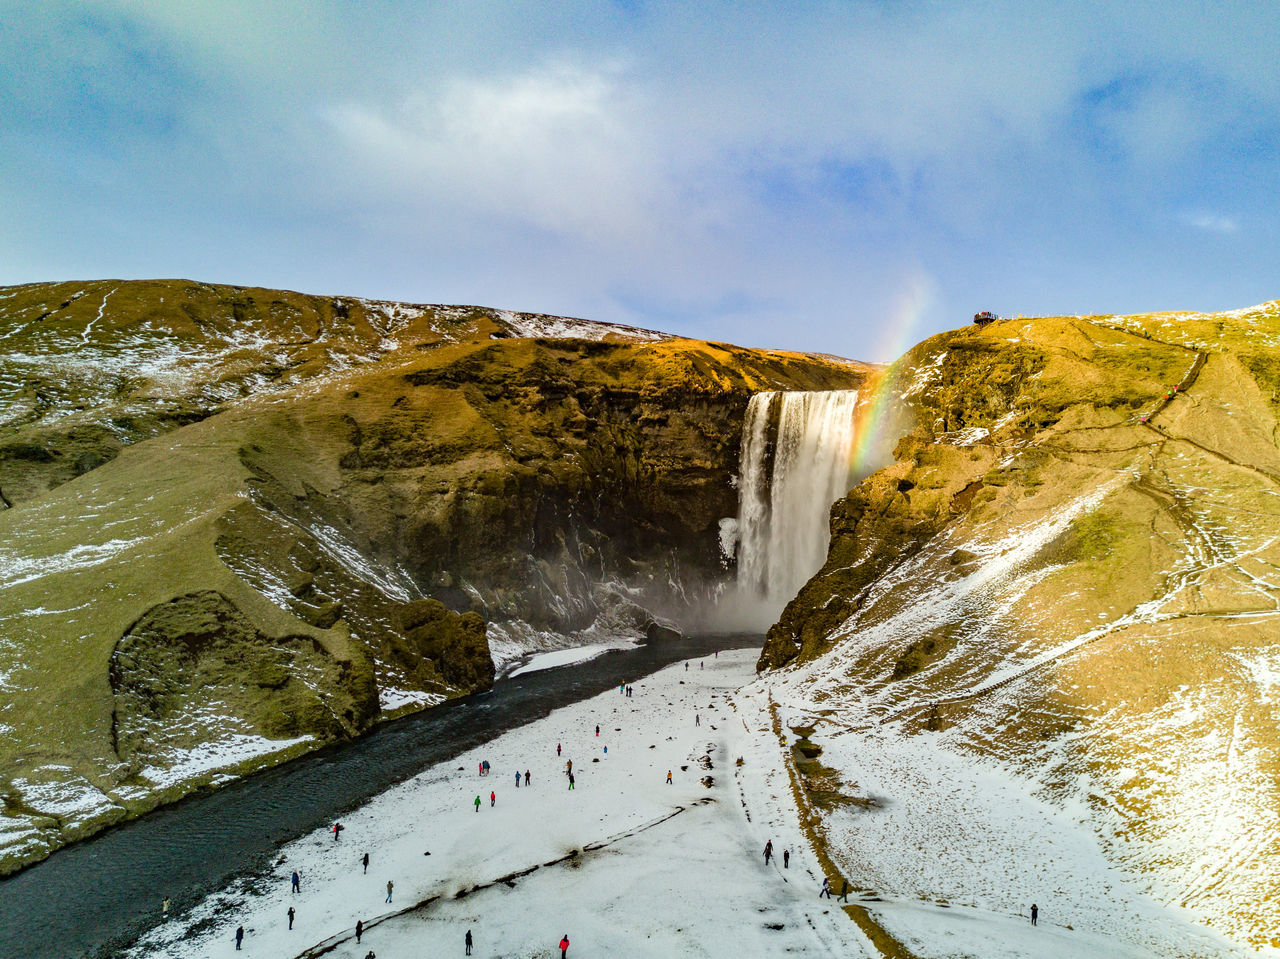 The famous Skógafoss falls, seen from high in the sky, with the last sun rays of the day illuminating the water splash to a small rainbow. Cold Temperature Dronephotography Falls Famous Place Flying High From Above  Iceland Landscape Mountain Nature Outdoors Rainbow Scandinavia Scenics Skogafoss Snow Tranquil Scene Tranquility Travel Destinations Waterfall Winding Road Winter